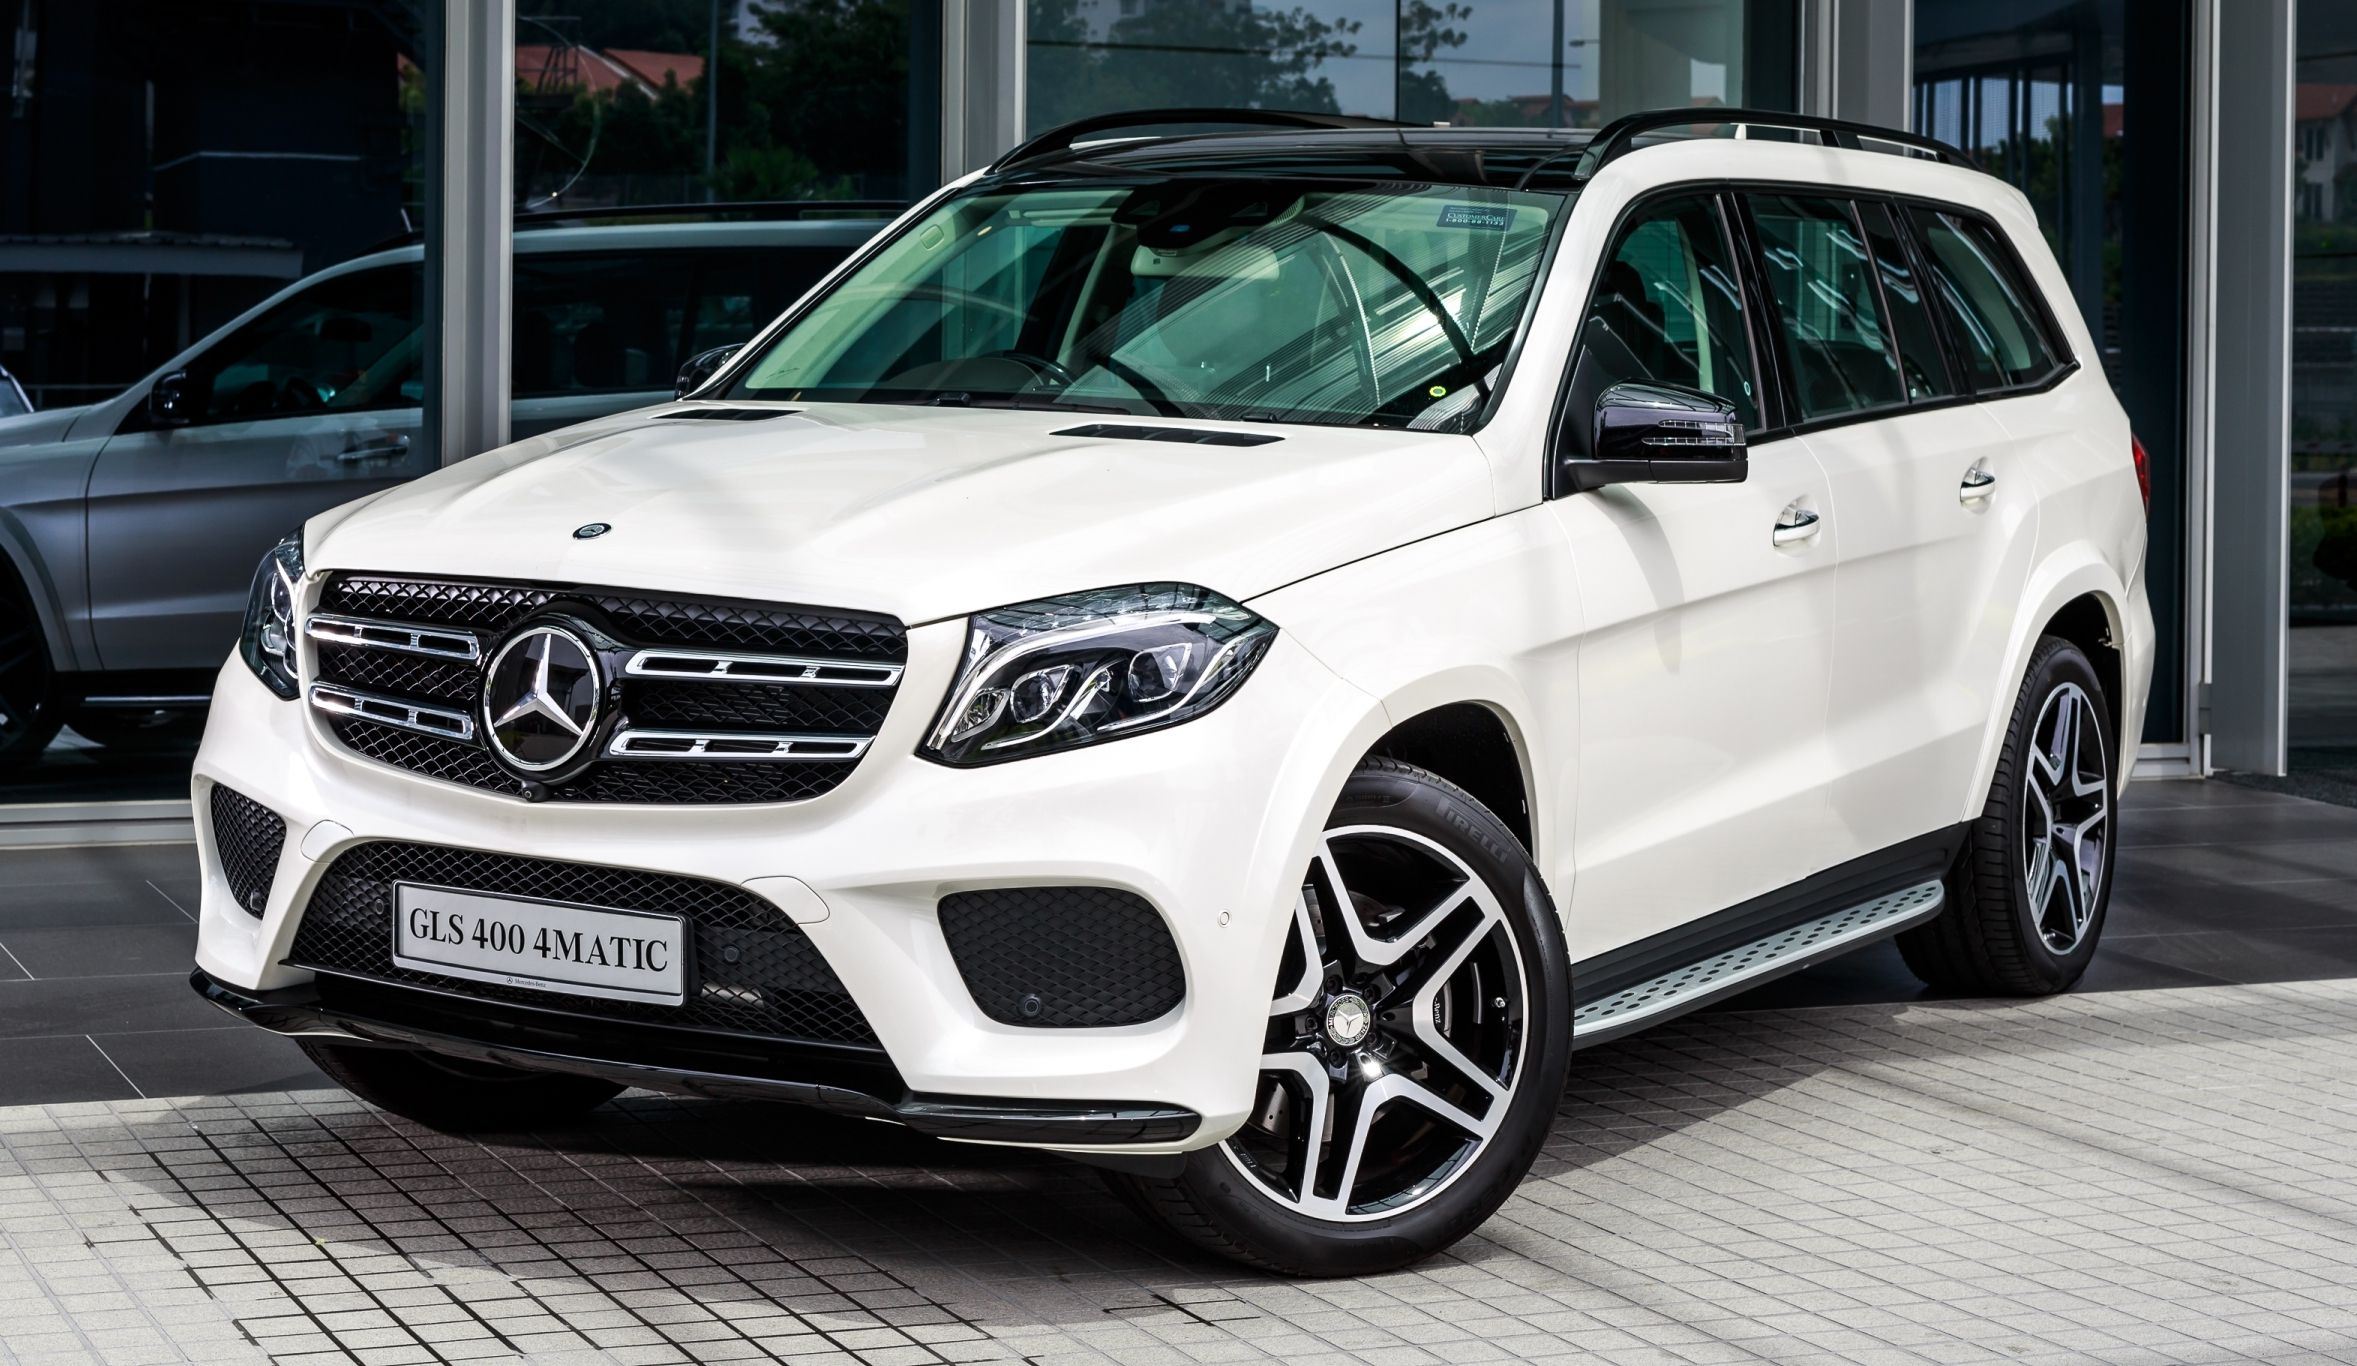 Aside from the g 63 edition 463 and glc 250 coupe mercedes benz malaysia also gave the refreshed gls its debut the seven seater suv arriving here